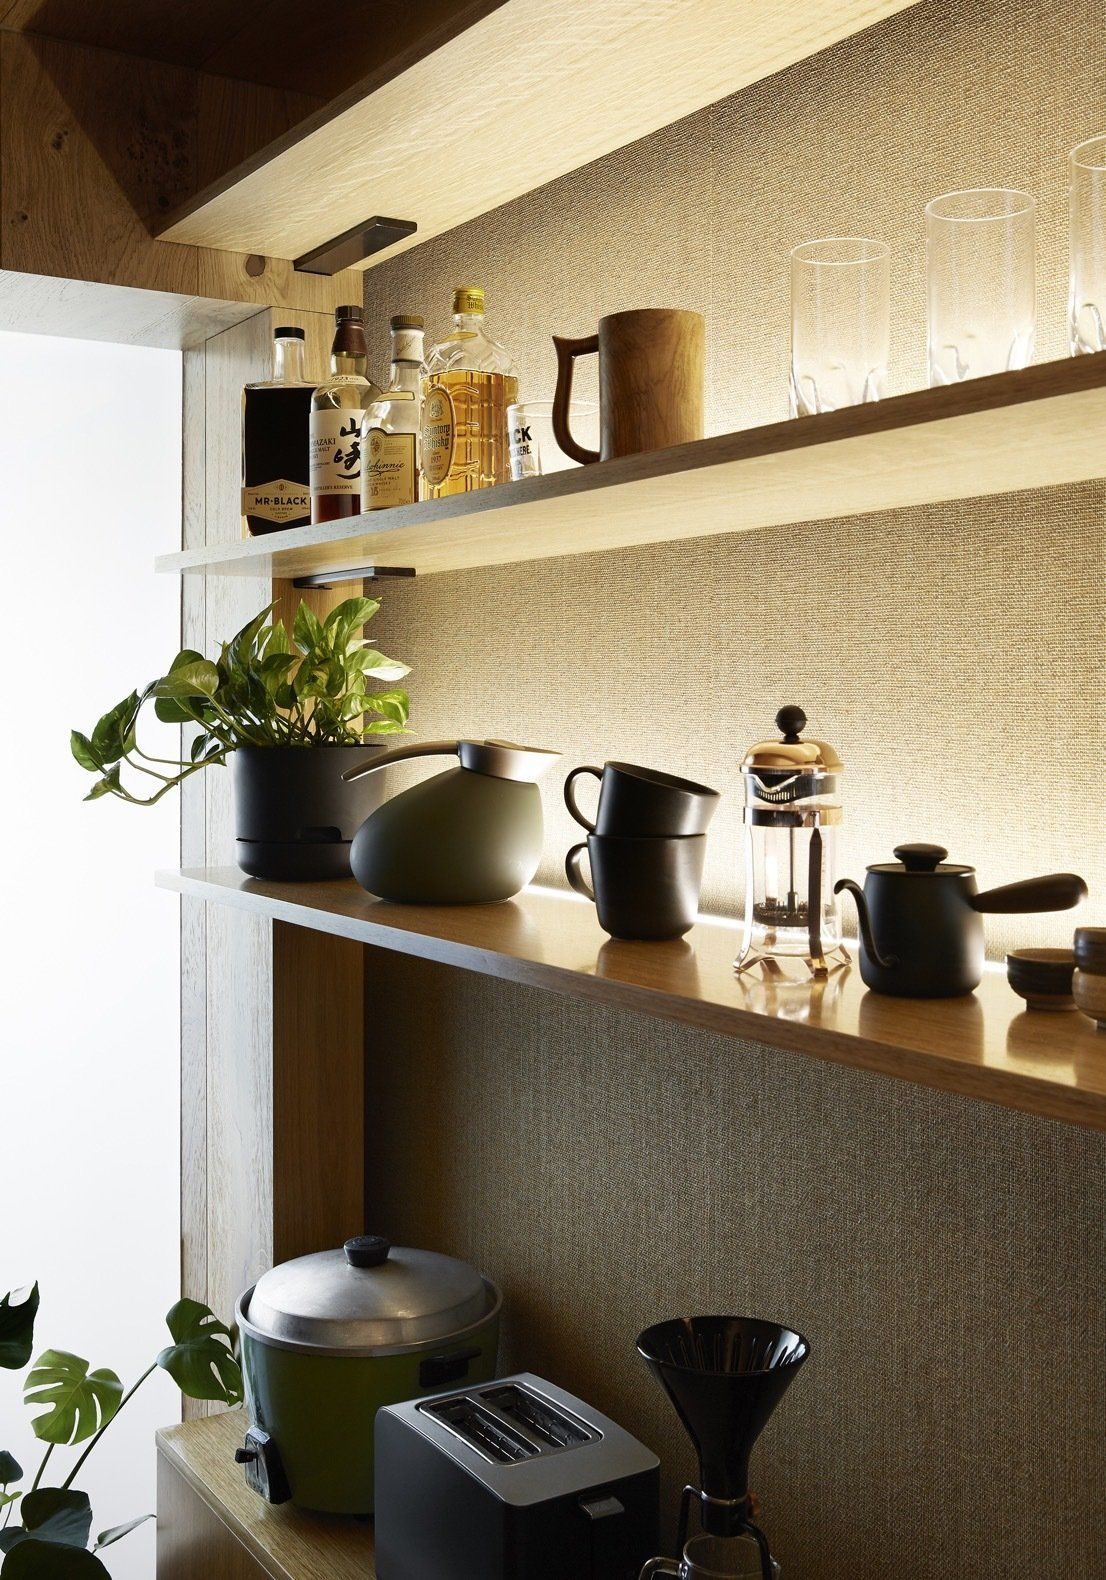 The timber surfaces and units featured throughout the apartment create a warm and inviting vibe